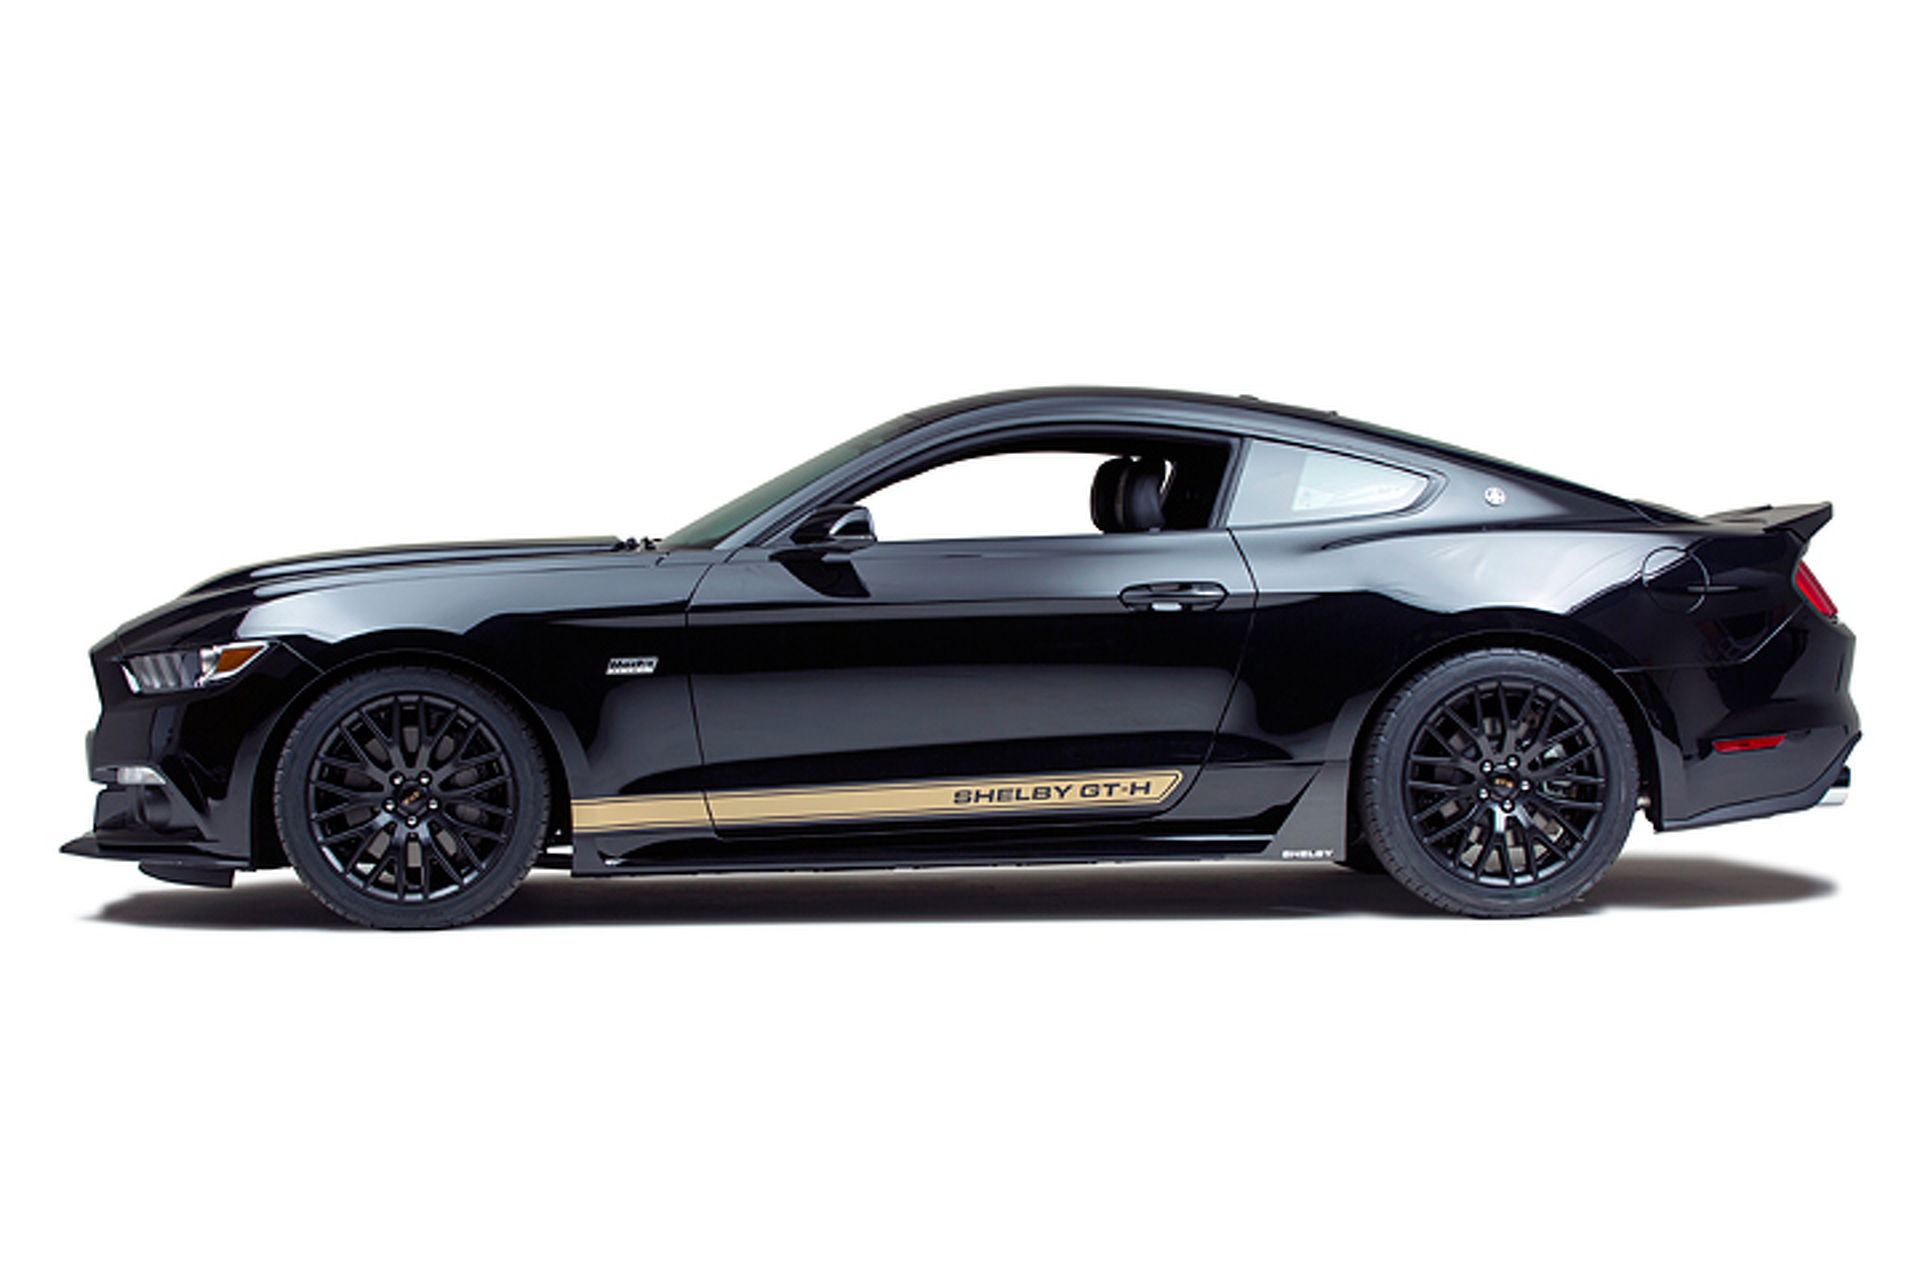 Shelby GT-H Ford Mustangs Now Available for Memorial Day Weekend